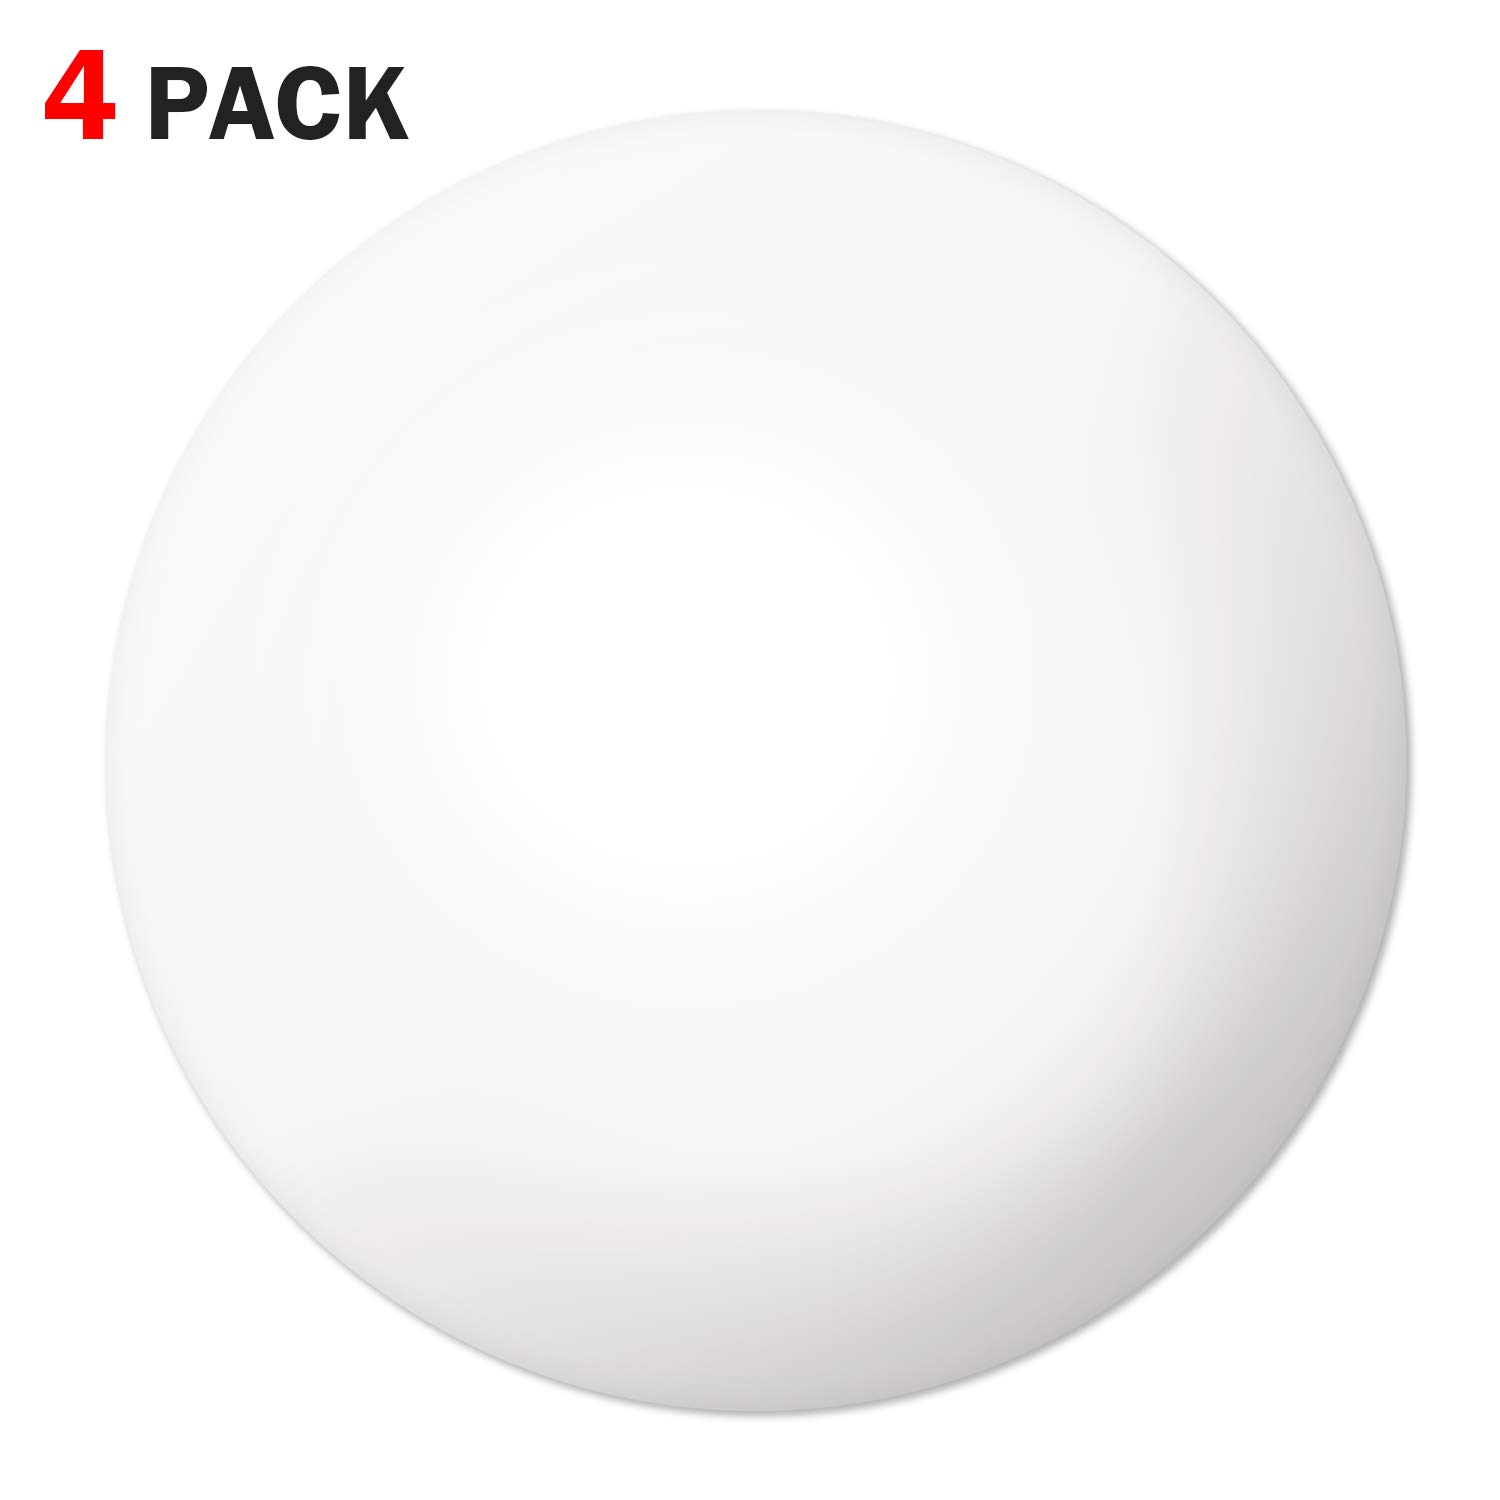 "Door Stopper Wall Protector (4 Pack), 3.15"" Door Stopper Bumper Door Knob Guard Silicon 3M Self Adhesive Prevent Damage to Wall, Doorknobs, Refrigerator Door, White"